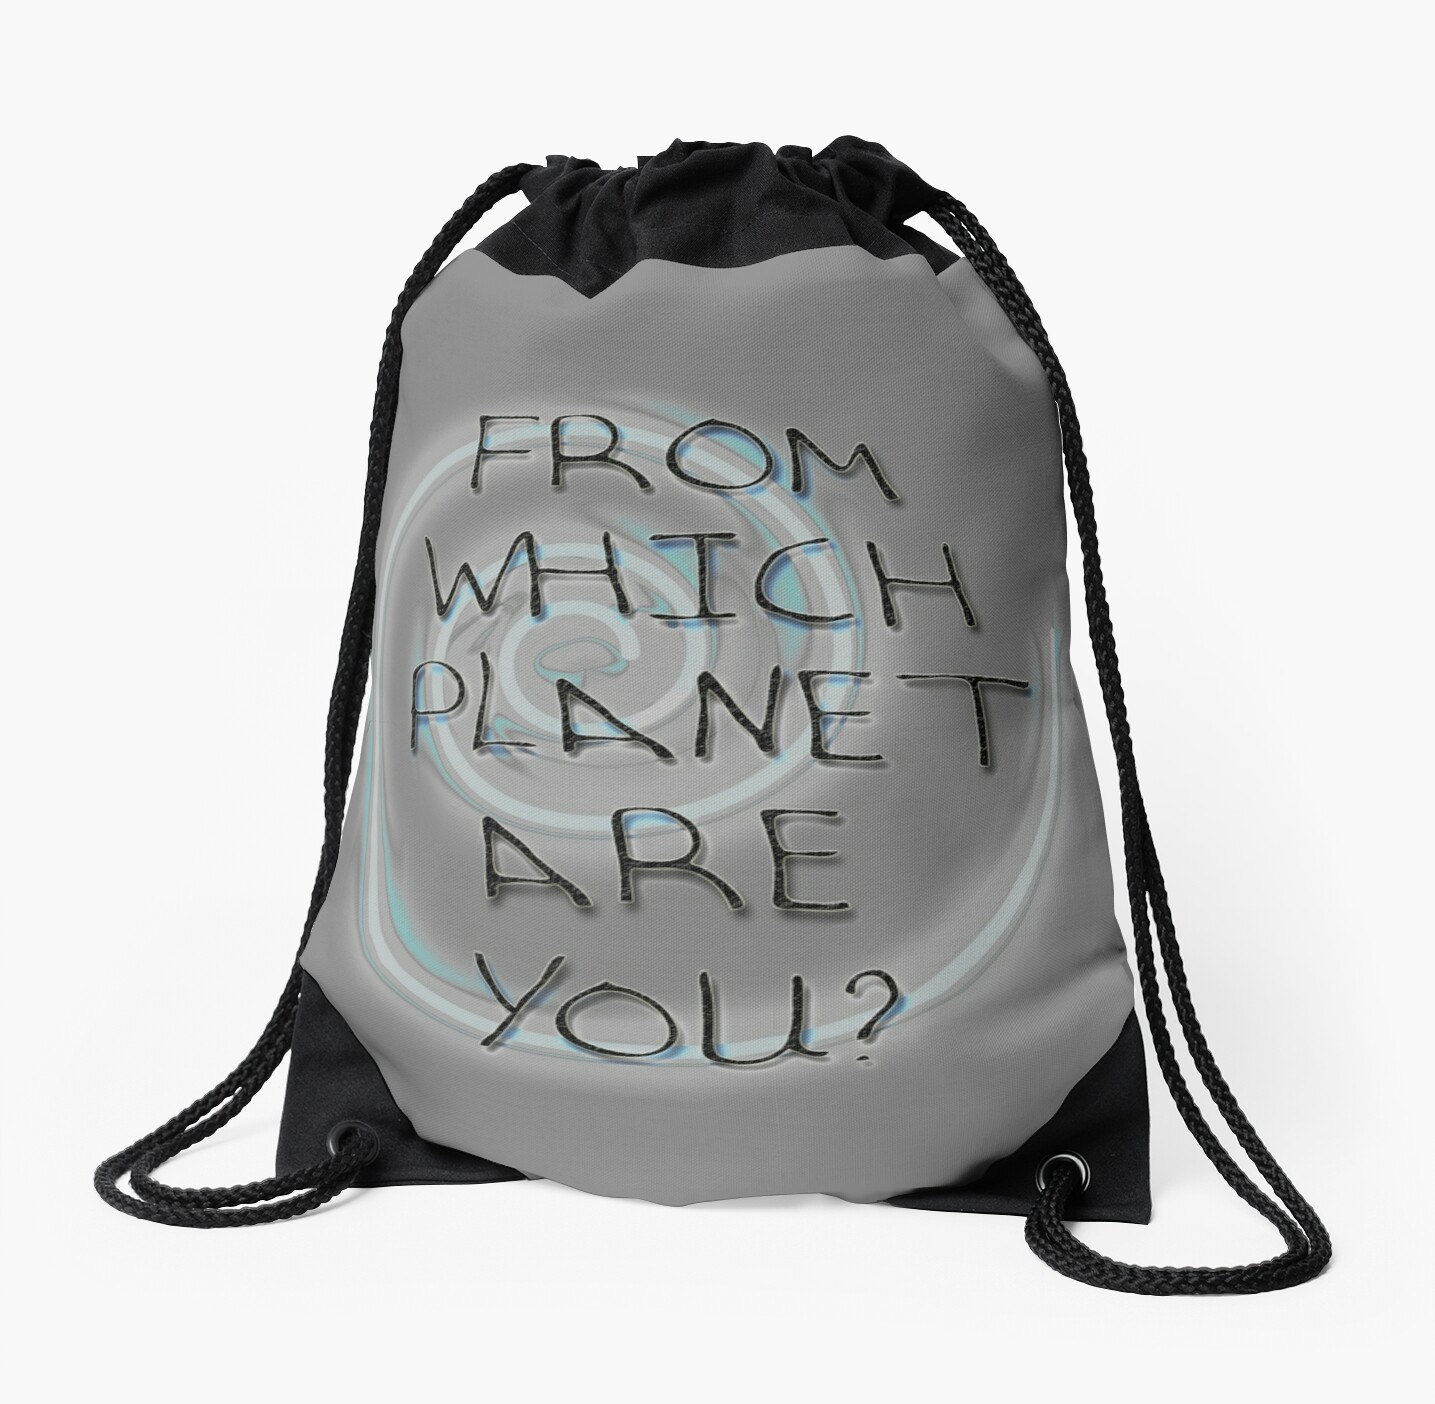 Name your planet  by balsano